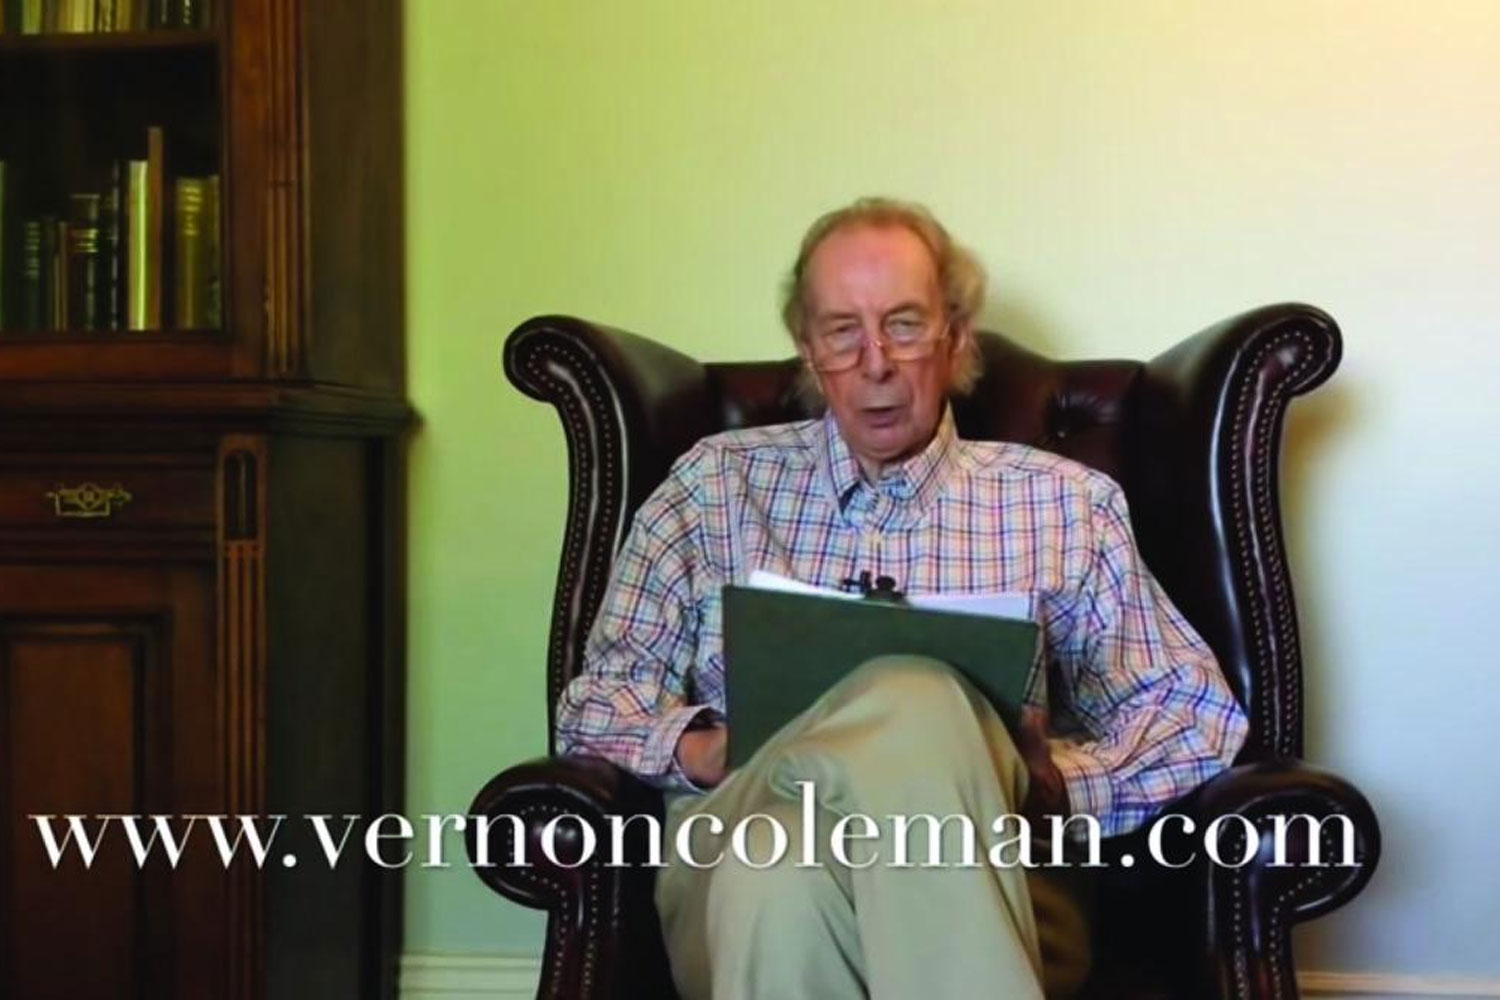 Vernon Coleman, a prolific author and doctor, is seen on a YouTube video clip.